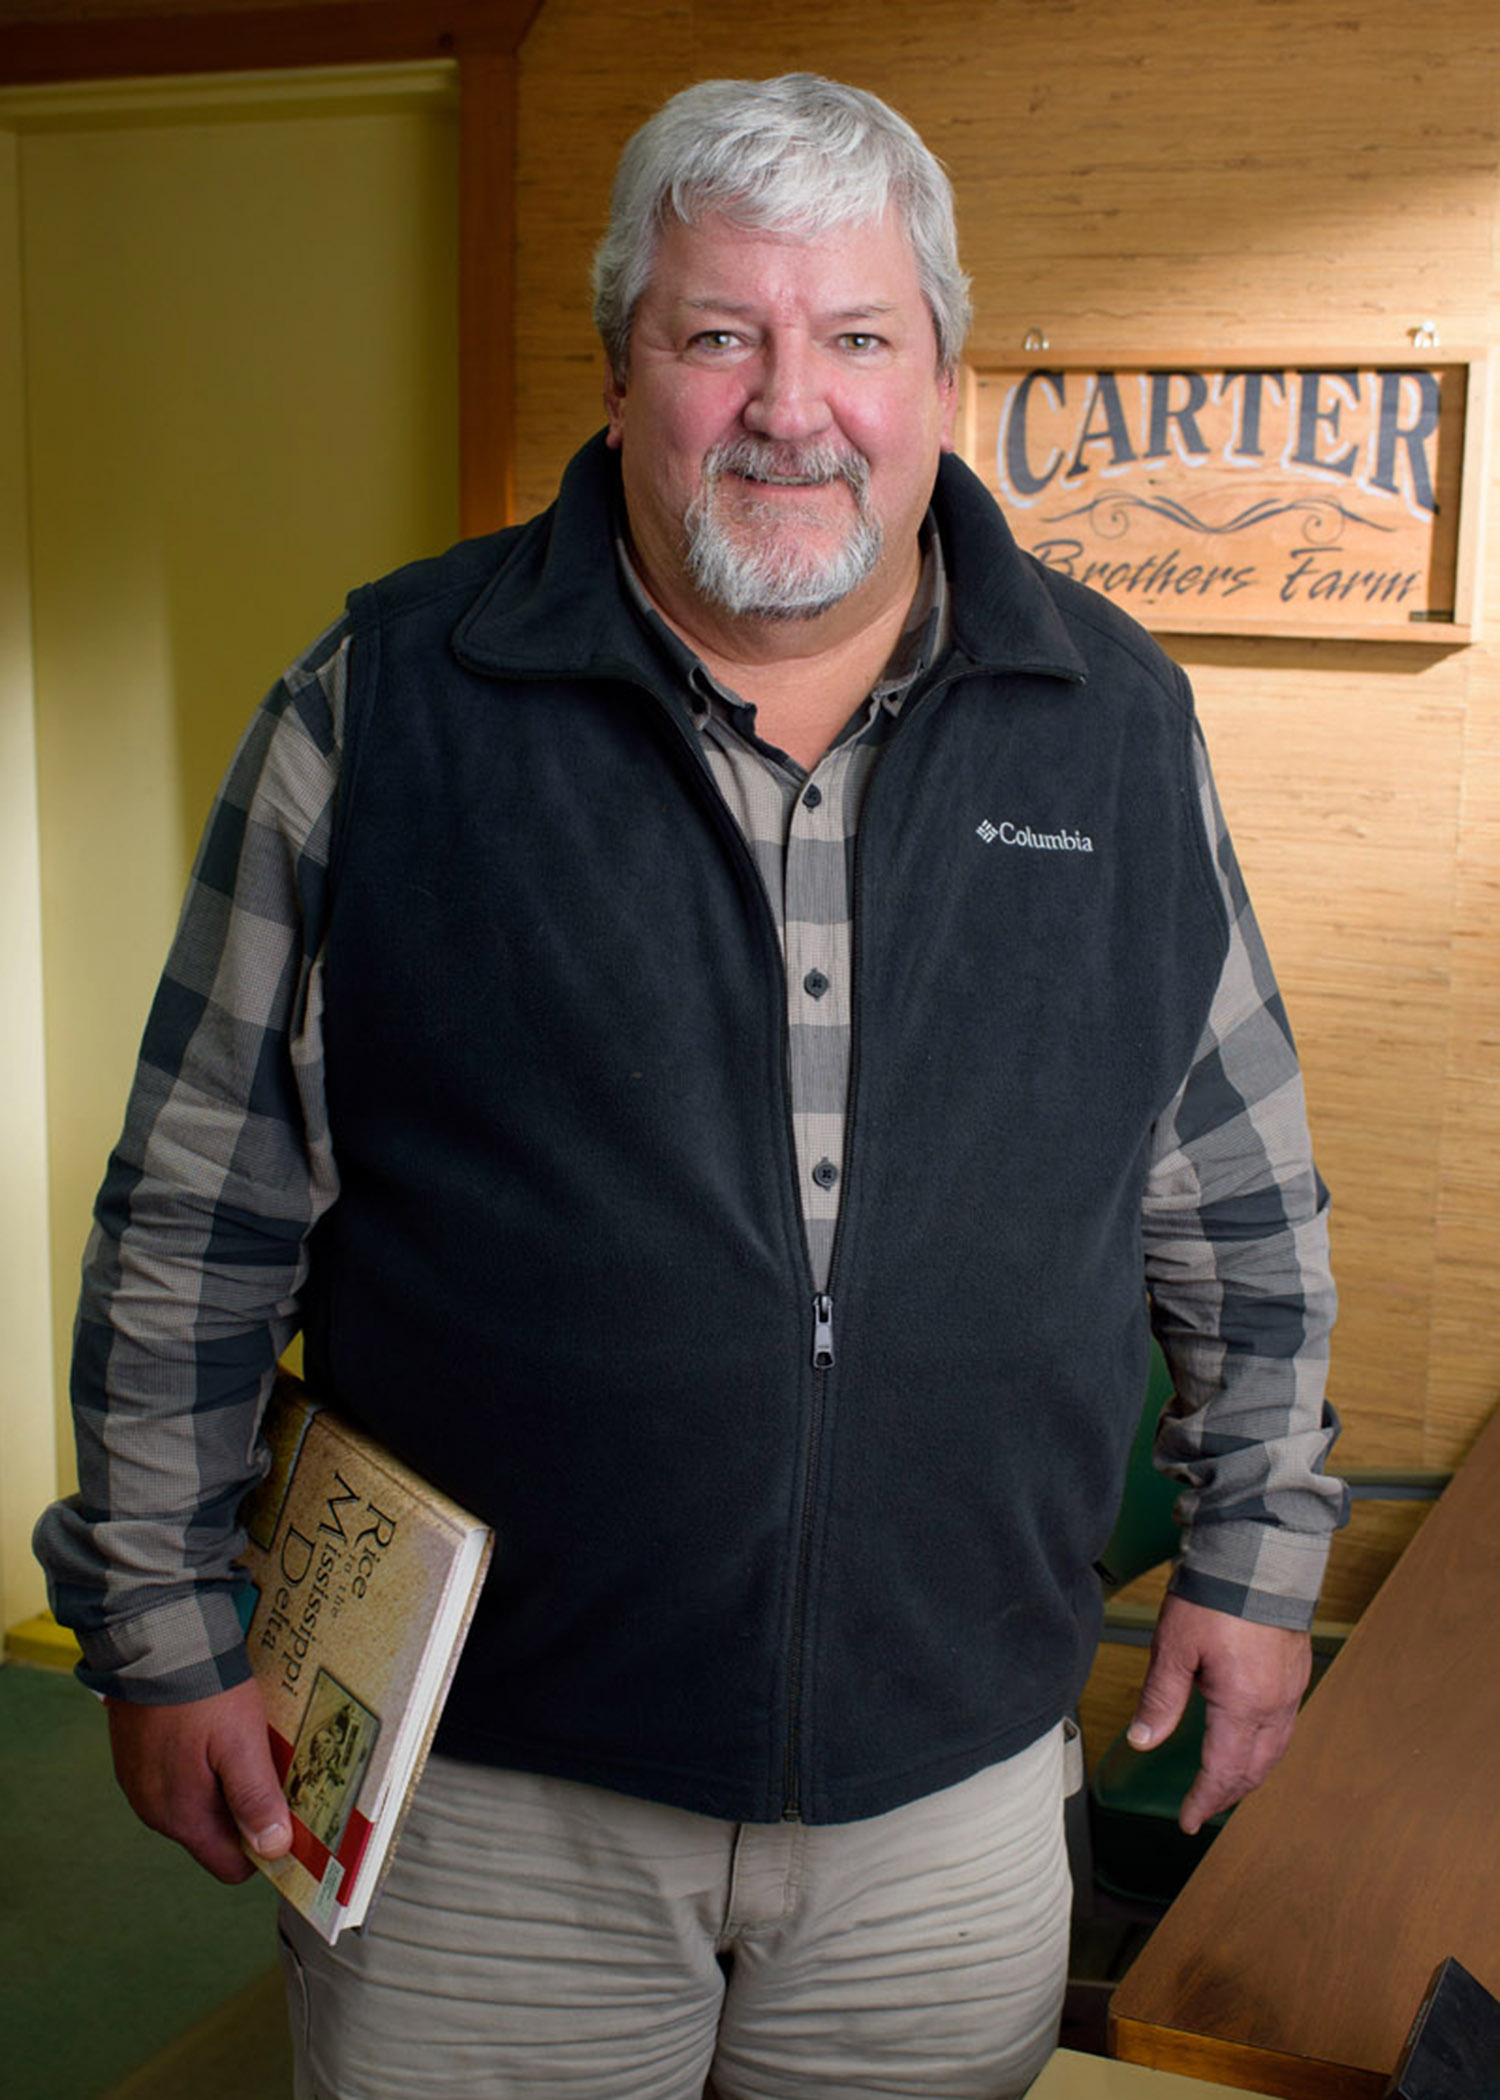 "A gray-haired man with a goatee wears a navy blue vest over a blue-checkered, long-sleeved polo and tan slacks. He stands in front of a ""Carter Brothers Farm"" sign and beside a desk with a rolodex as sun filters across the background."